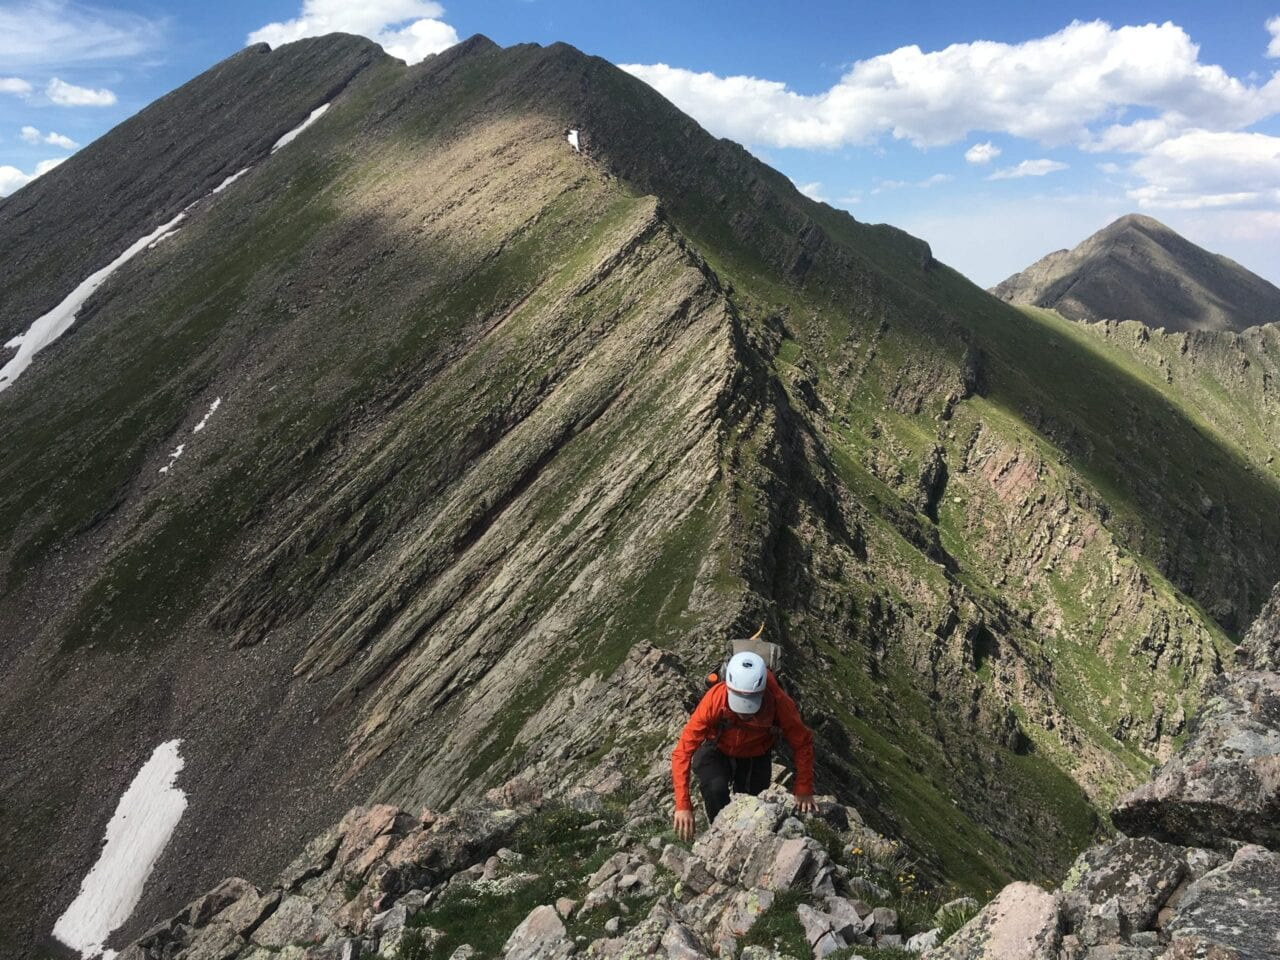 A hiker climbs a sharp rocky ridge with towering peaks behind them.